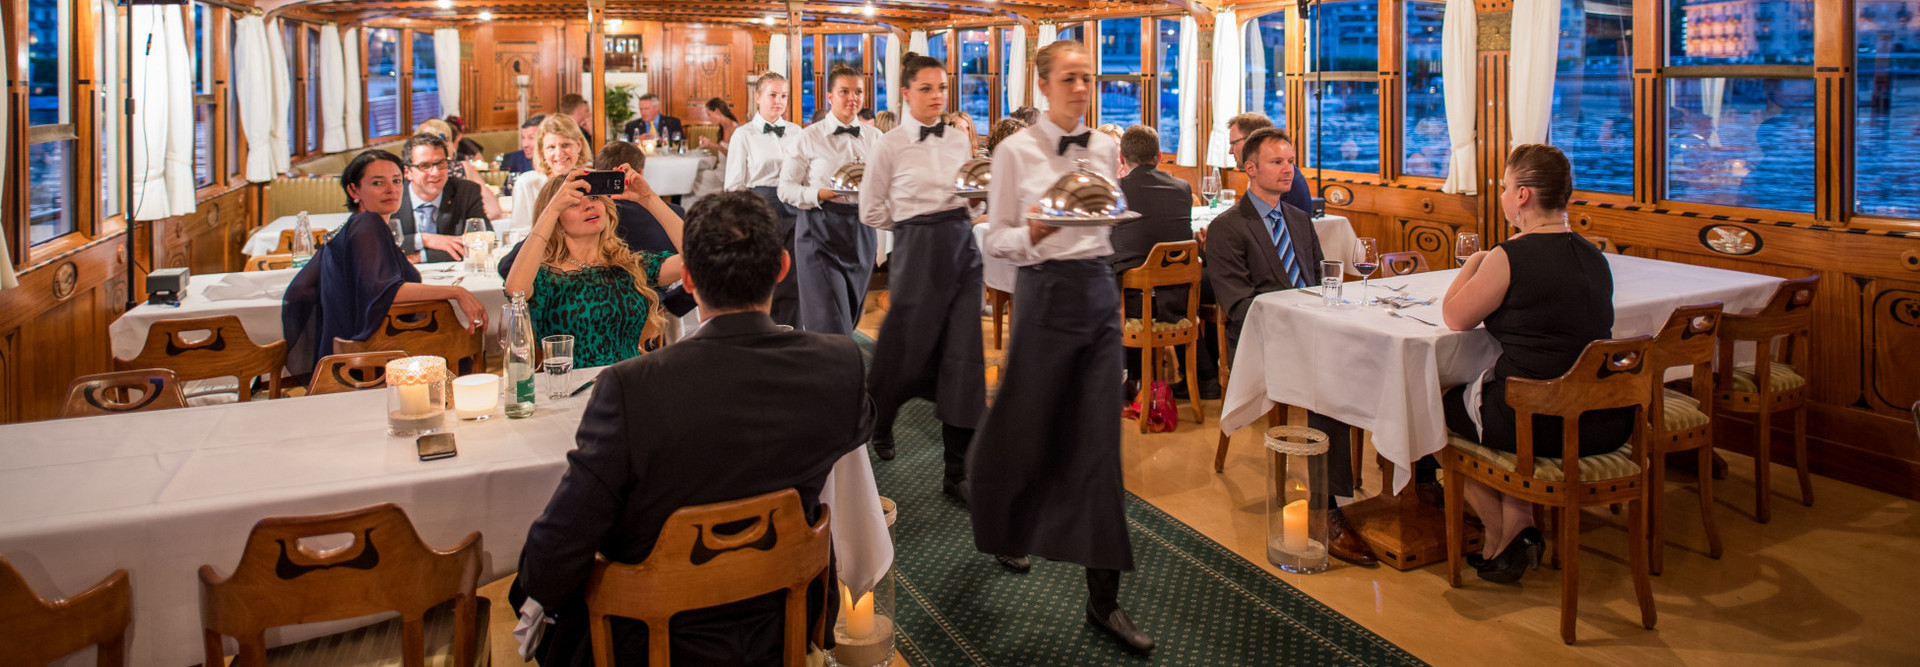 The gala dinner is served on a steamer of the Lake Lucerne Navigation Company